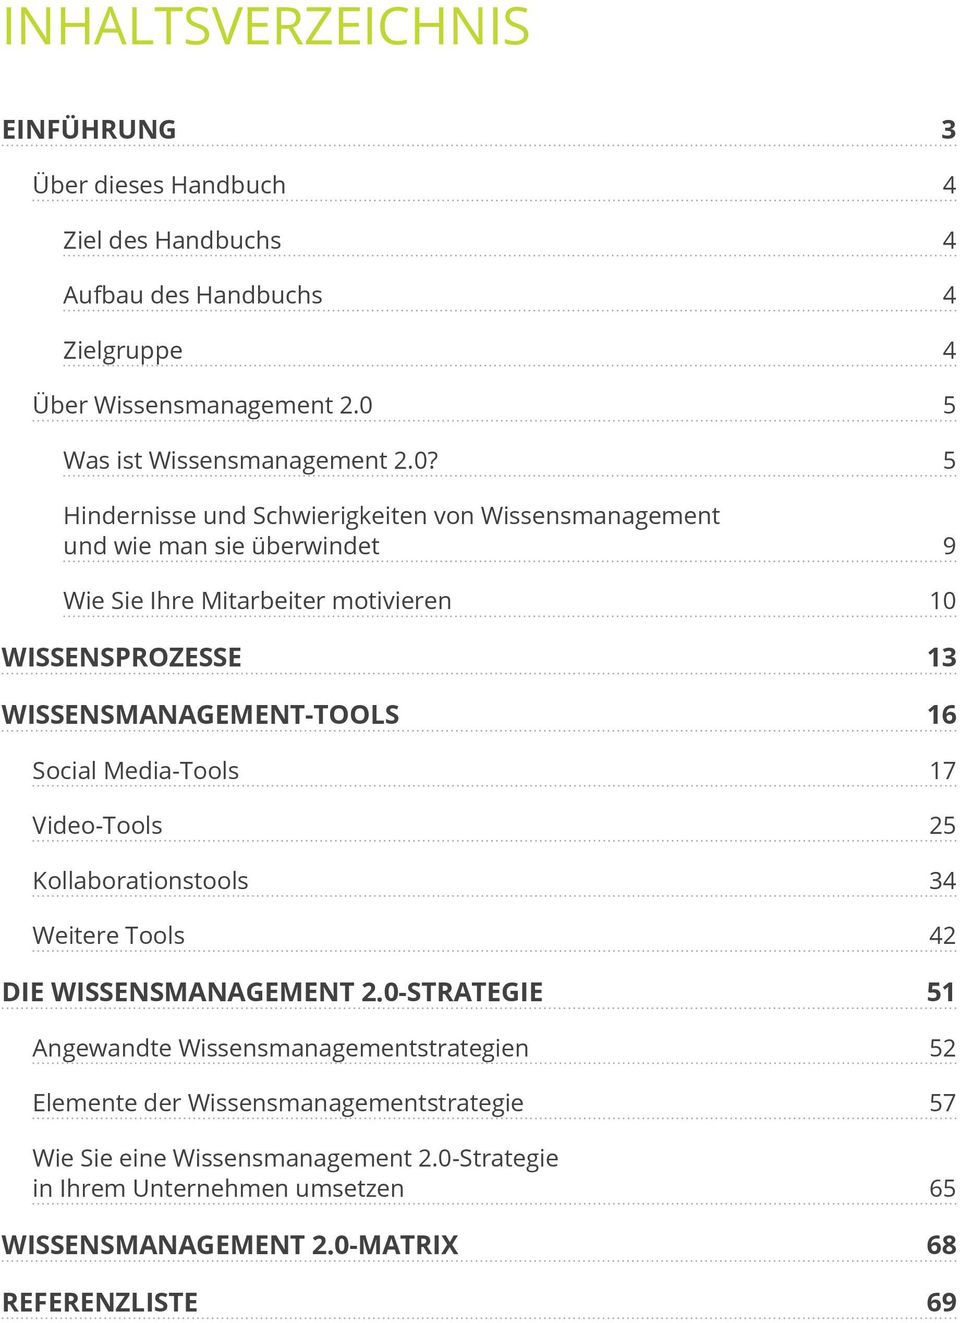 WISSENSPROZESSE 13 WISSENSMANAGEMENT-TOOLS 16 Social Media-Tools 17 Video-Tools 25 Kollaborationstools 34 Weitere Tools 42 DIE WISSENSMANA GEMENT 2.